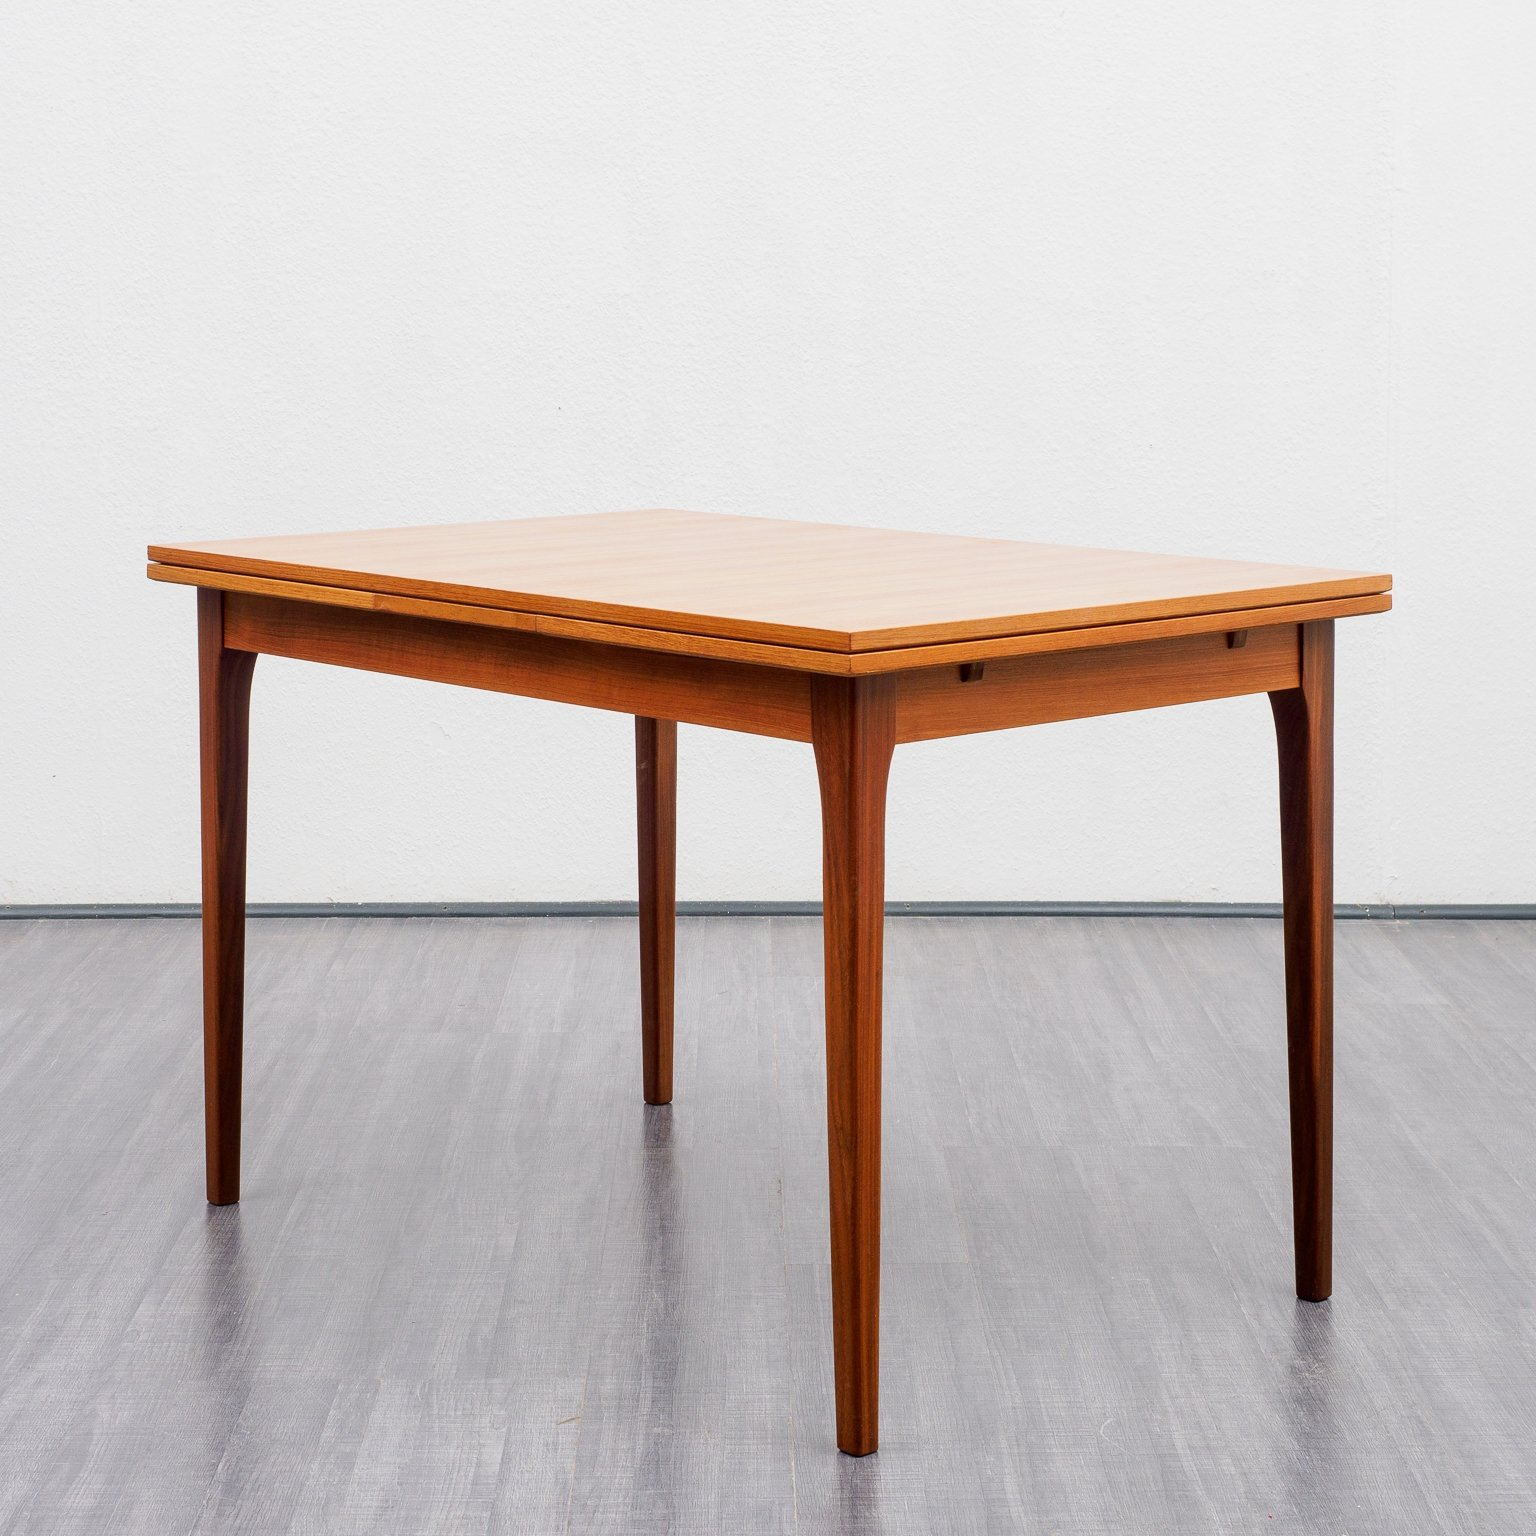 Vintage Mid Century Dining Table By Lubke Germany 1960s 118005